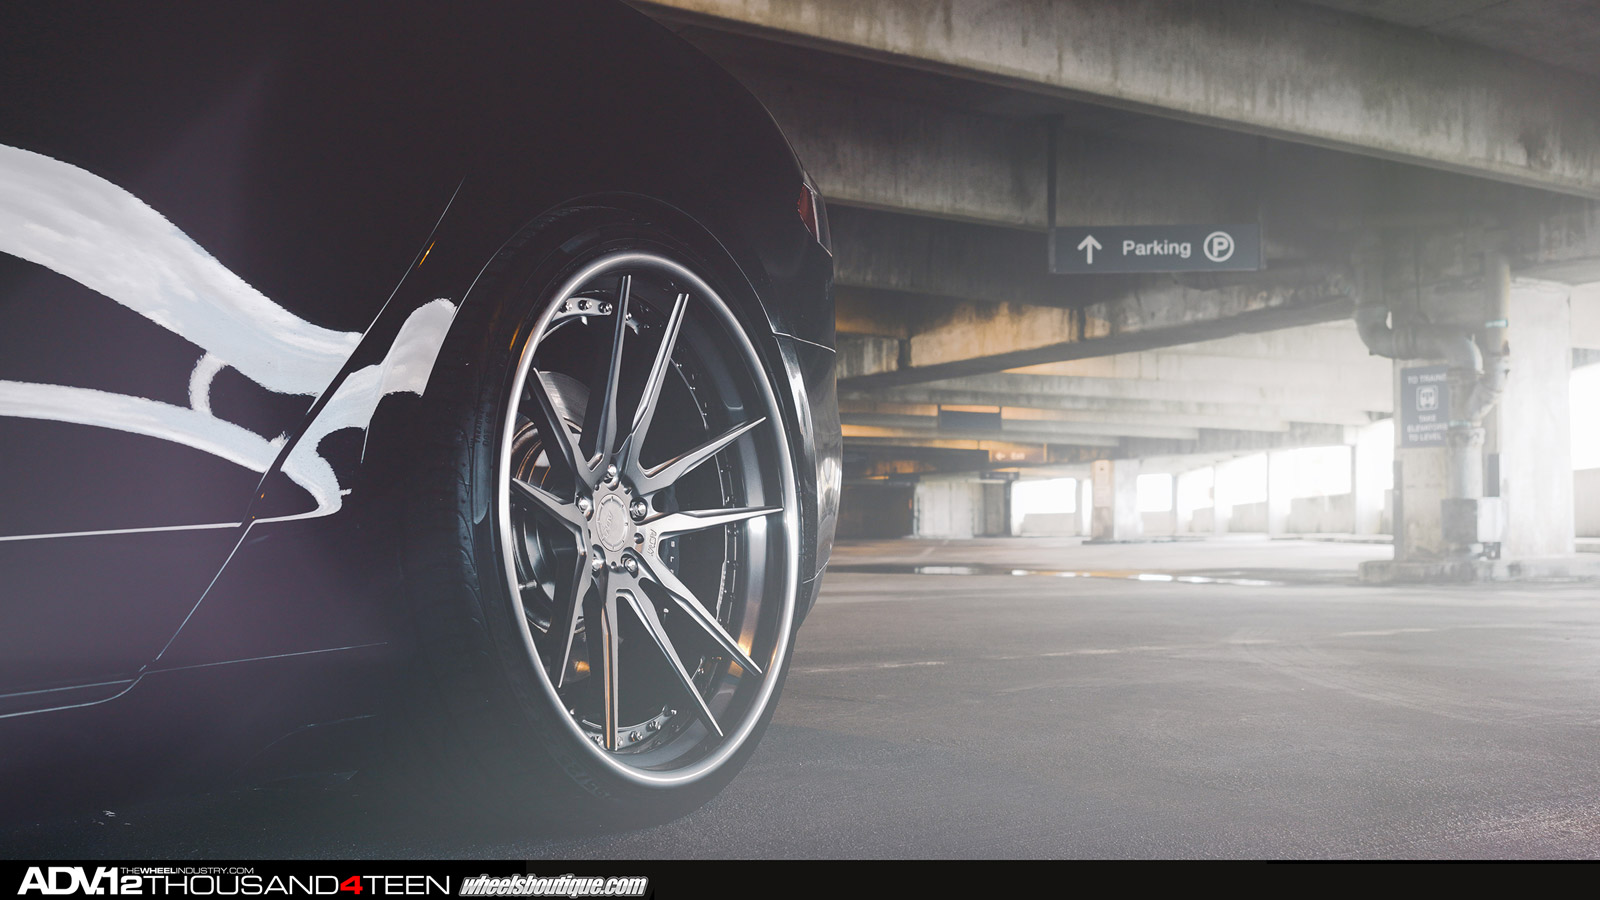 22 Inch Tires >> Tesla Model S Receives 22-inch ADV.1 Wheels - autoevolution